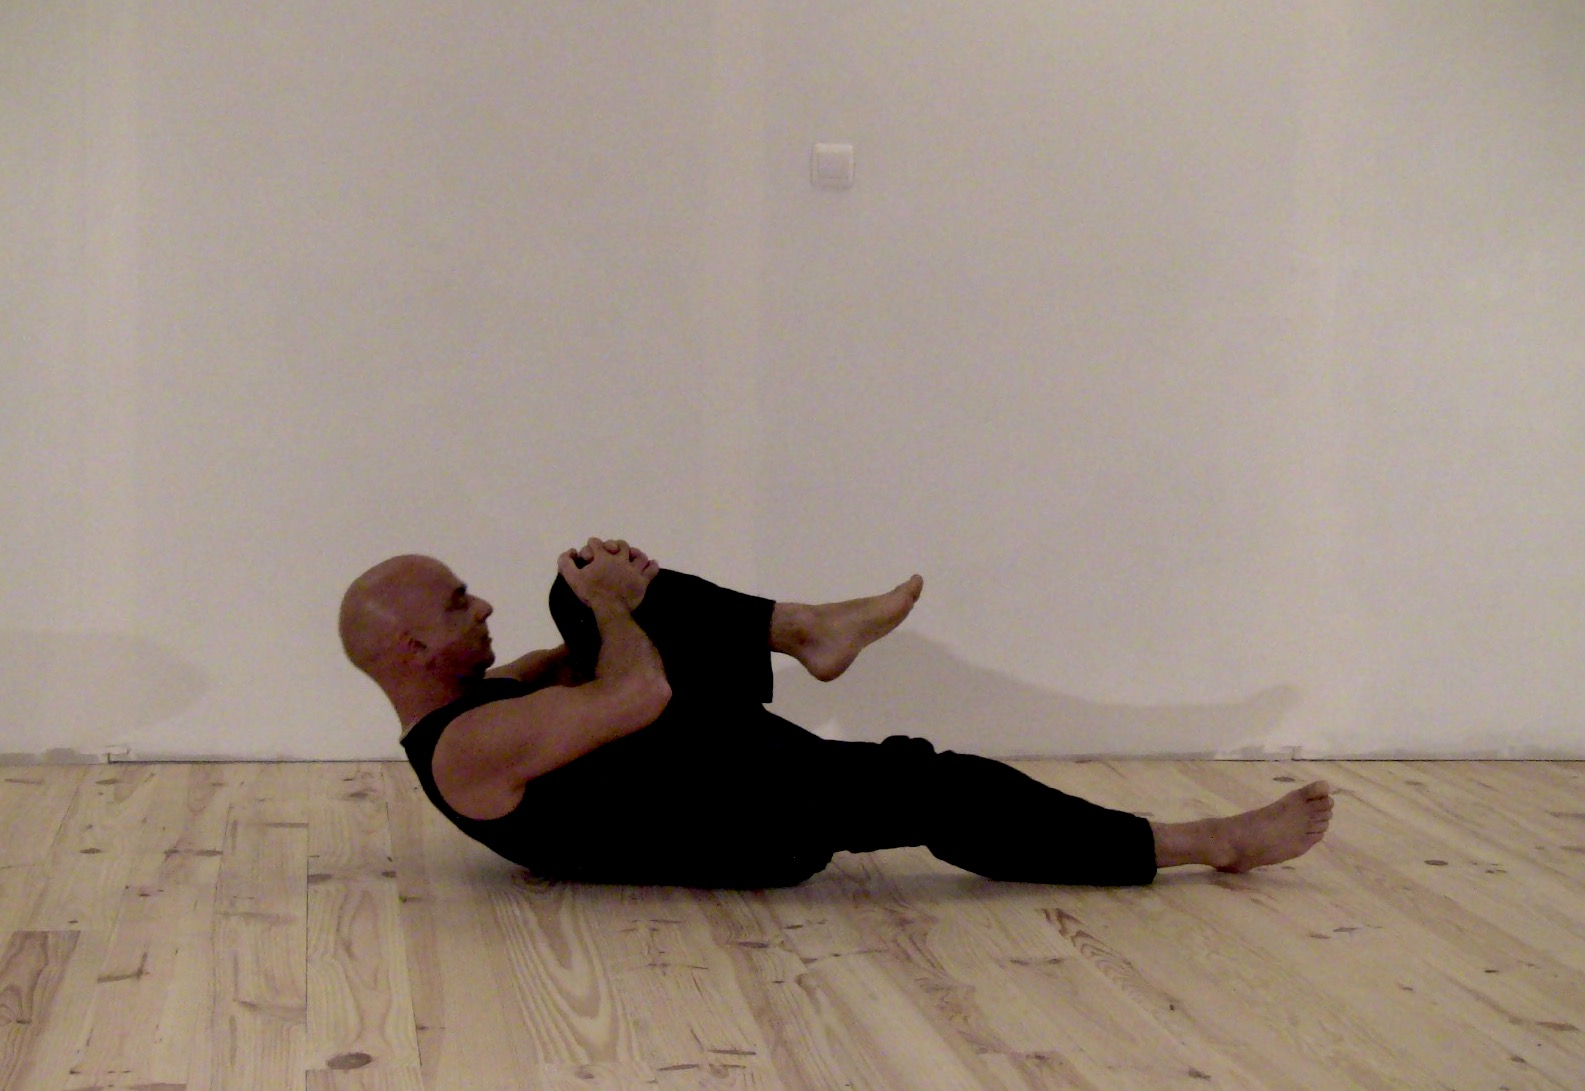 A move from tao yoga series 1